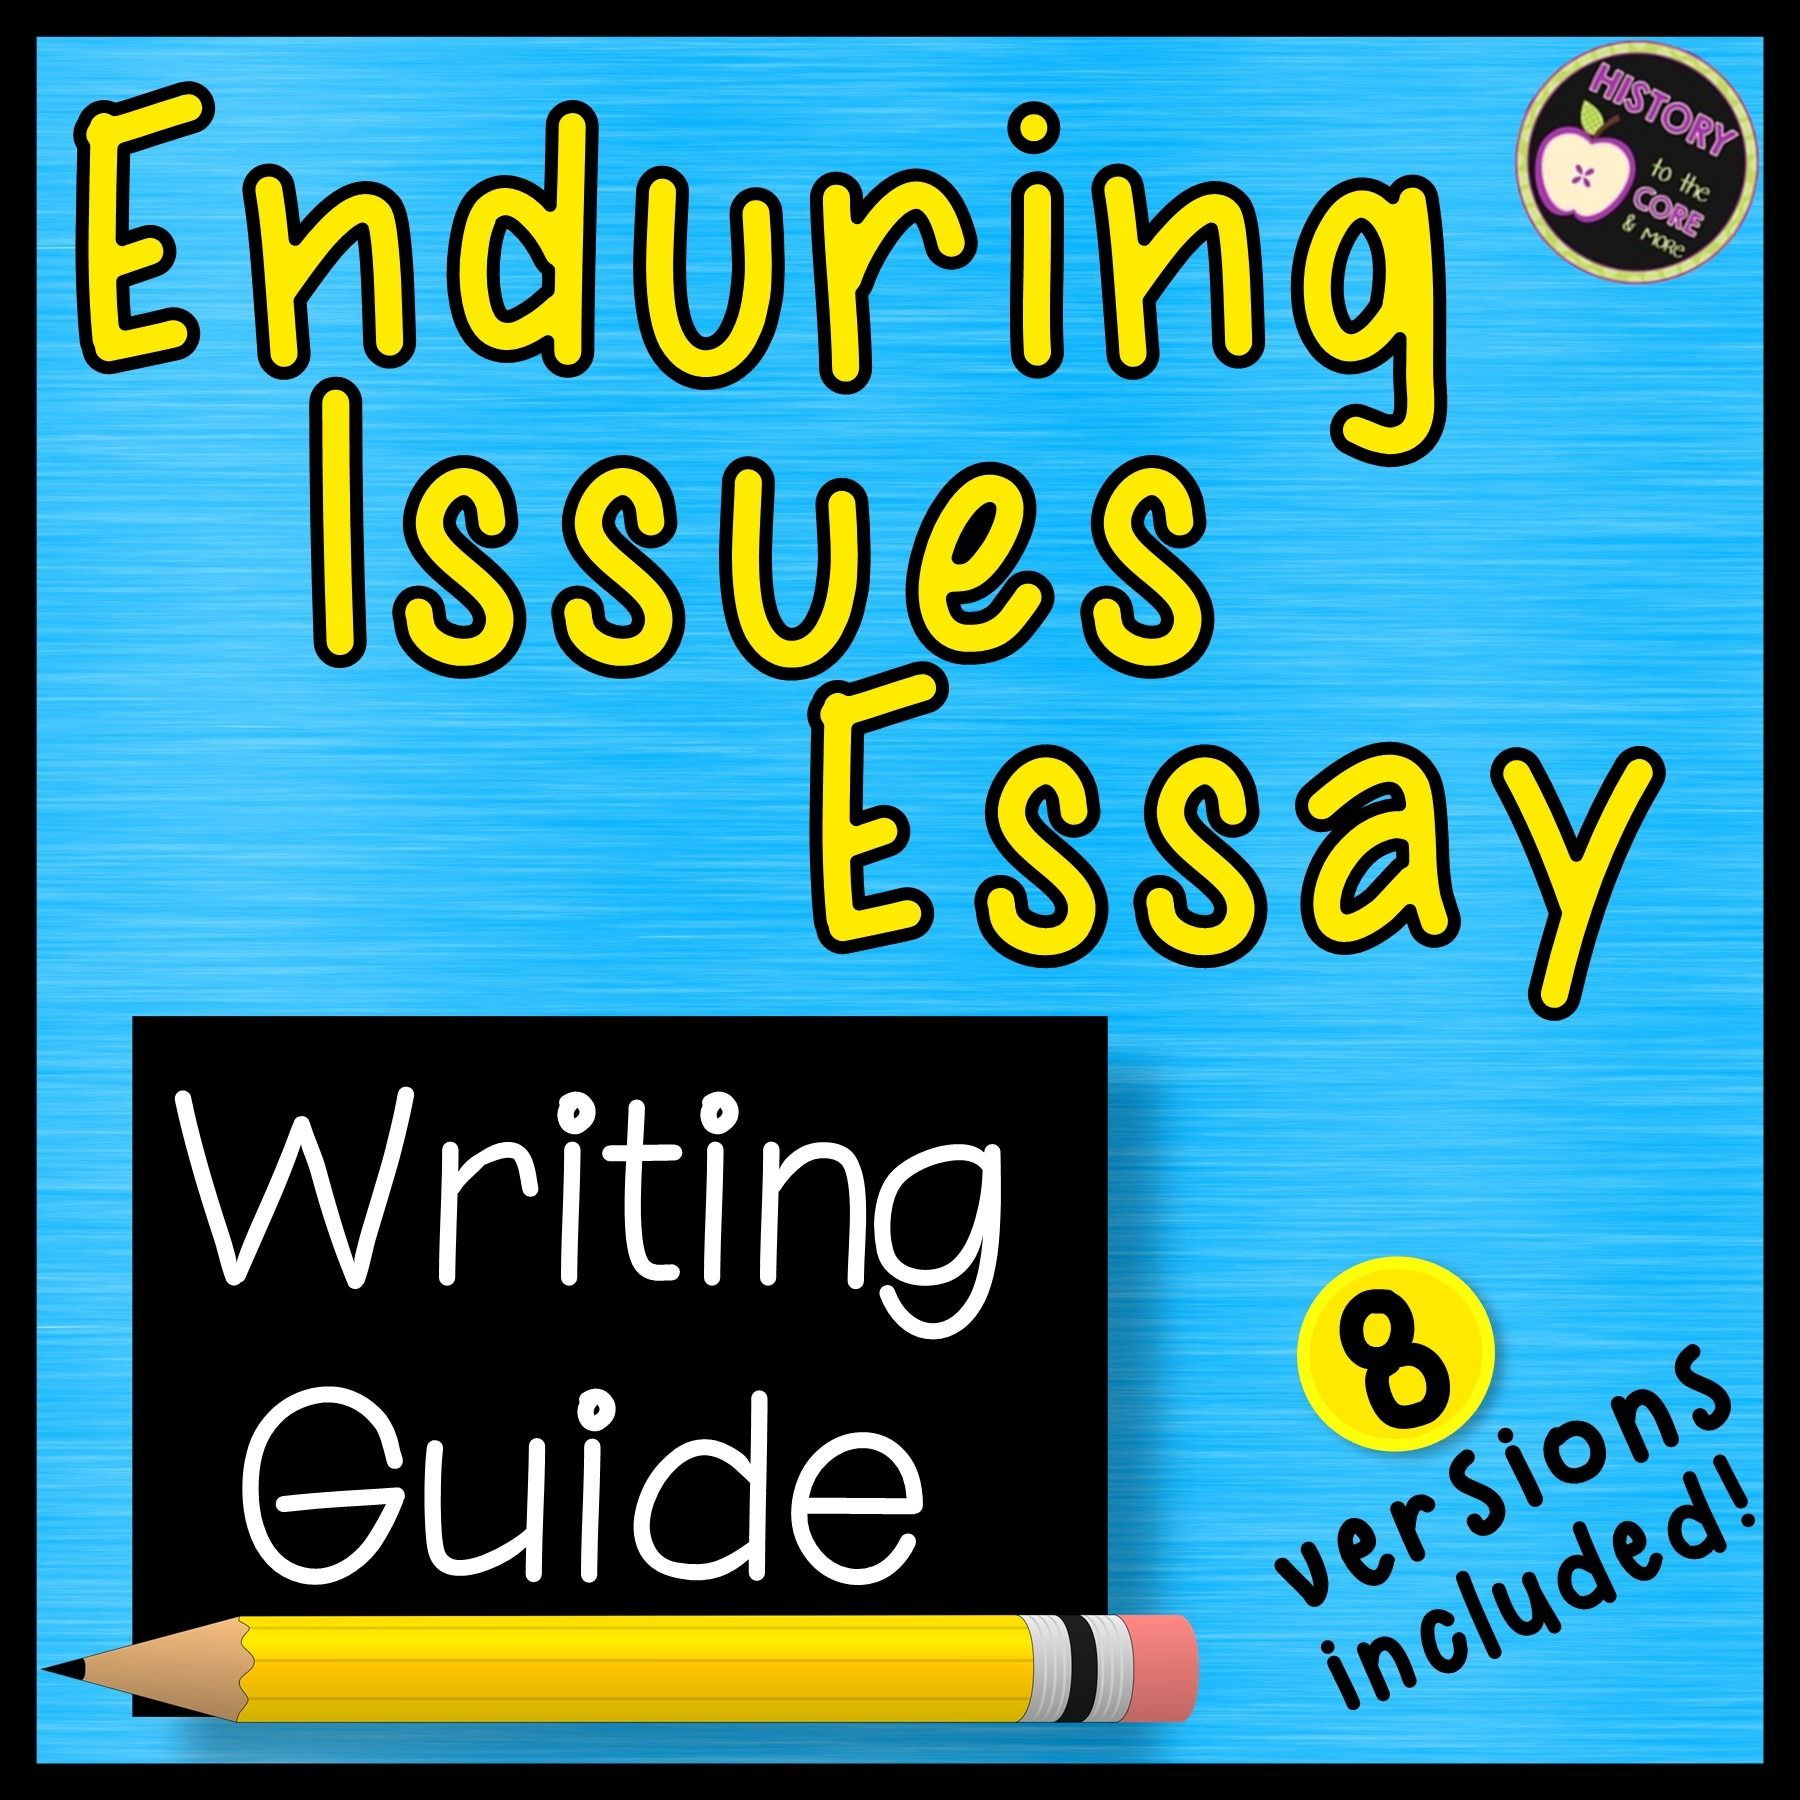 Enduring Issue Essay Organizer Outline Writing Help Academic Global